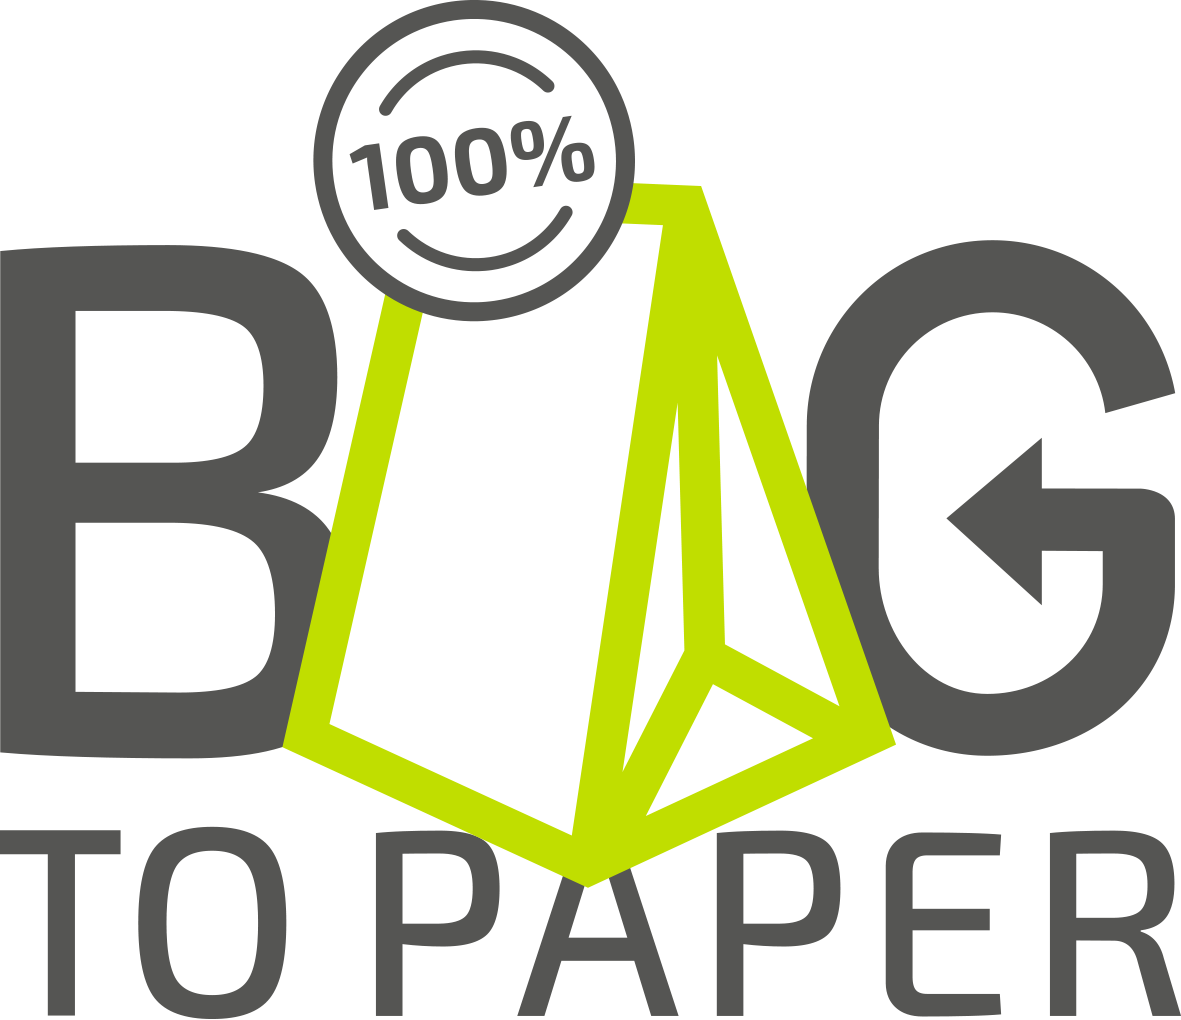 Bag-to-Paper-logo